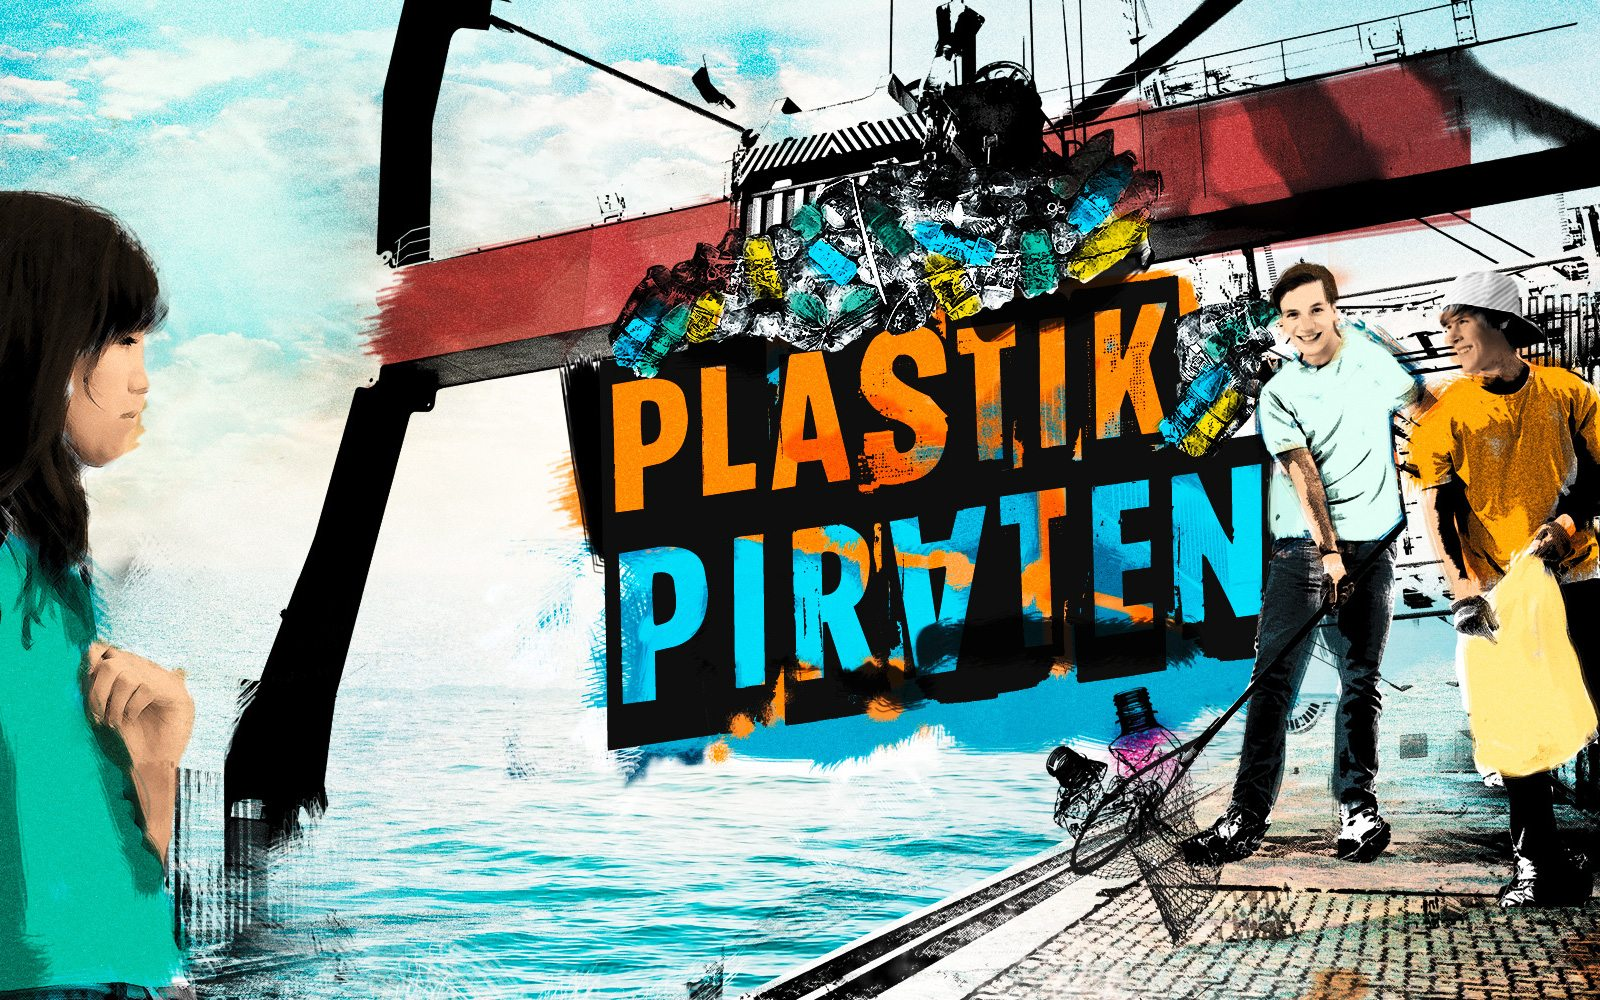 Year of Science 2016-17: Plastic Pirates